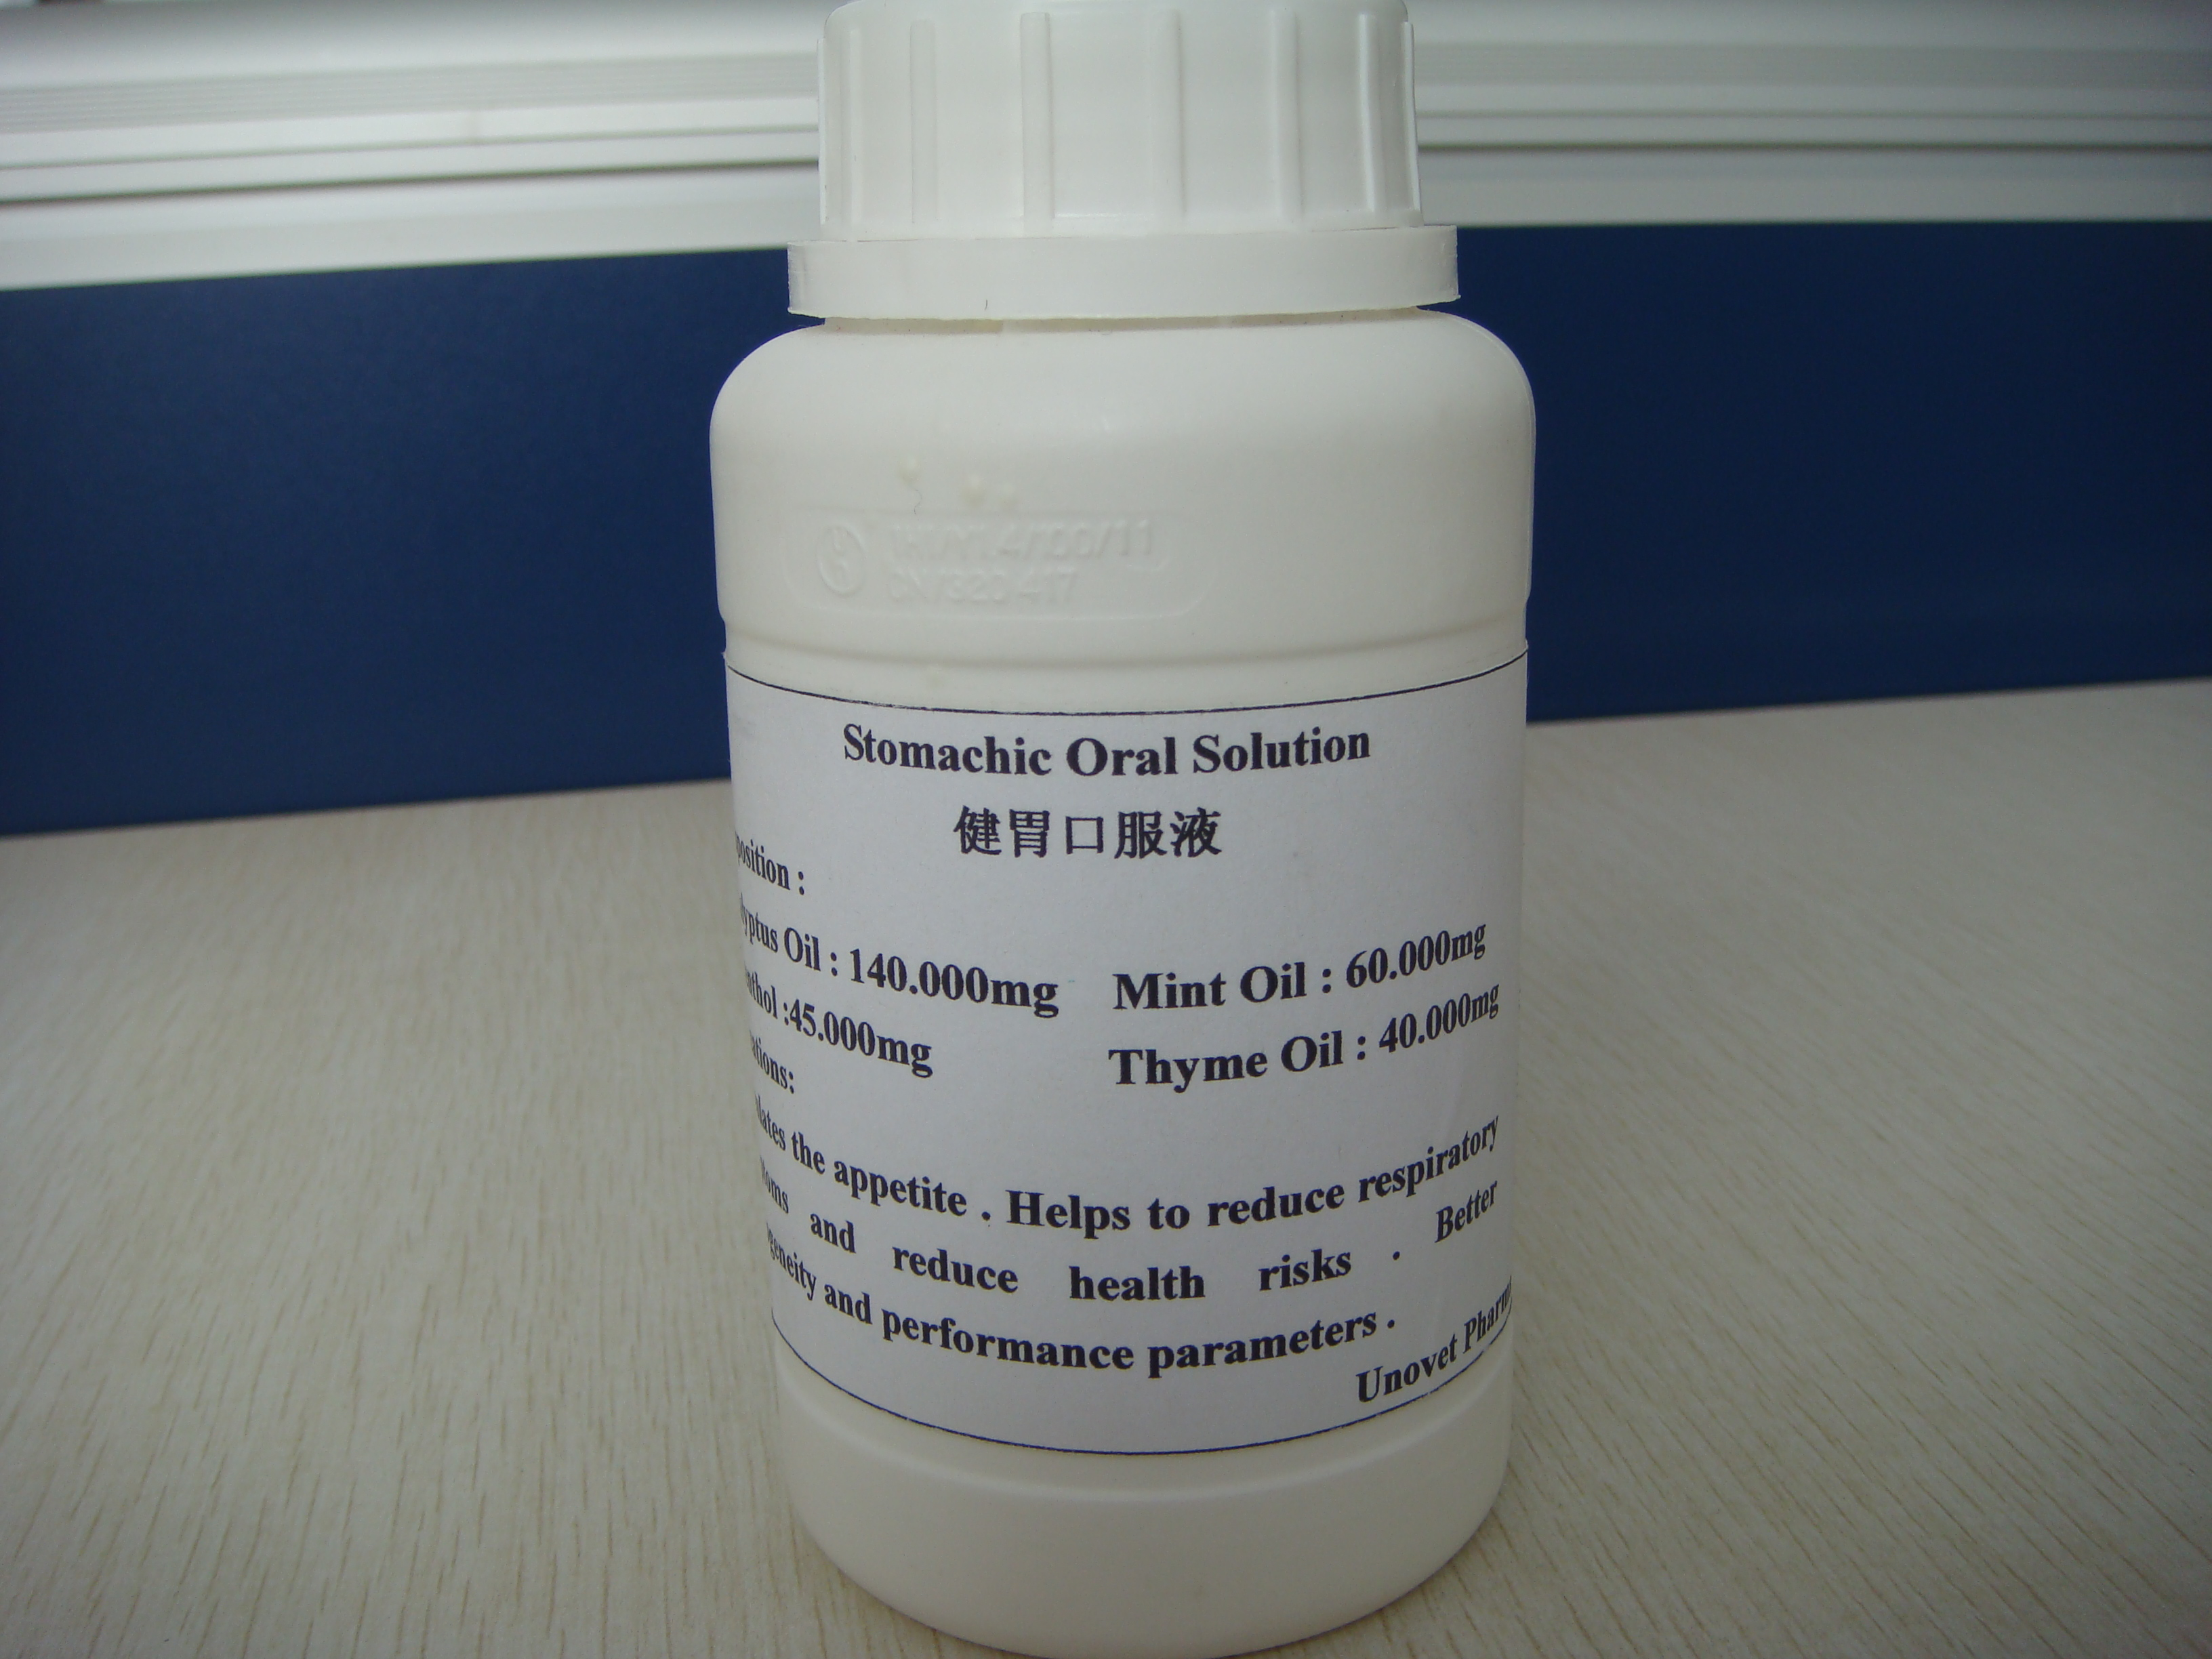 Stomachic Oral Solution